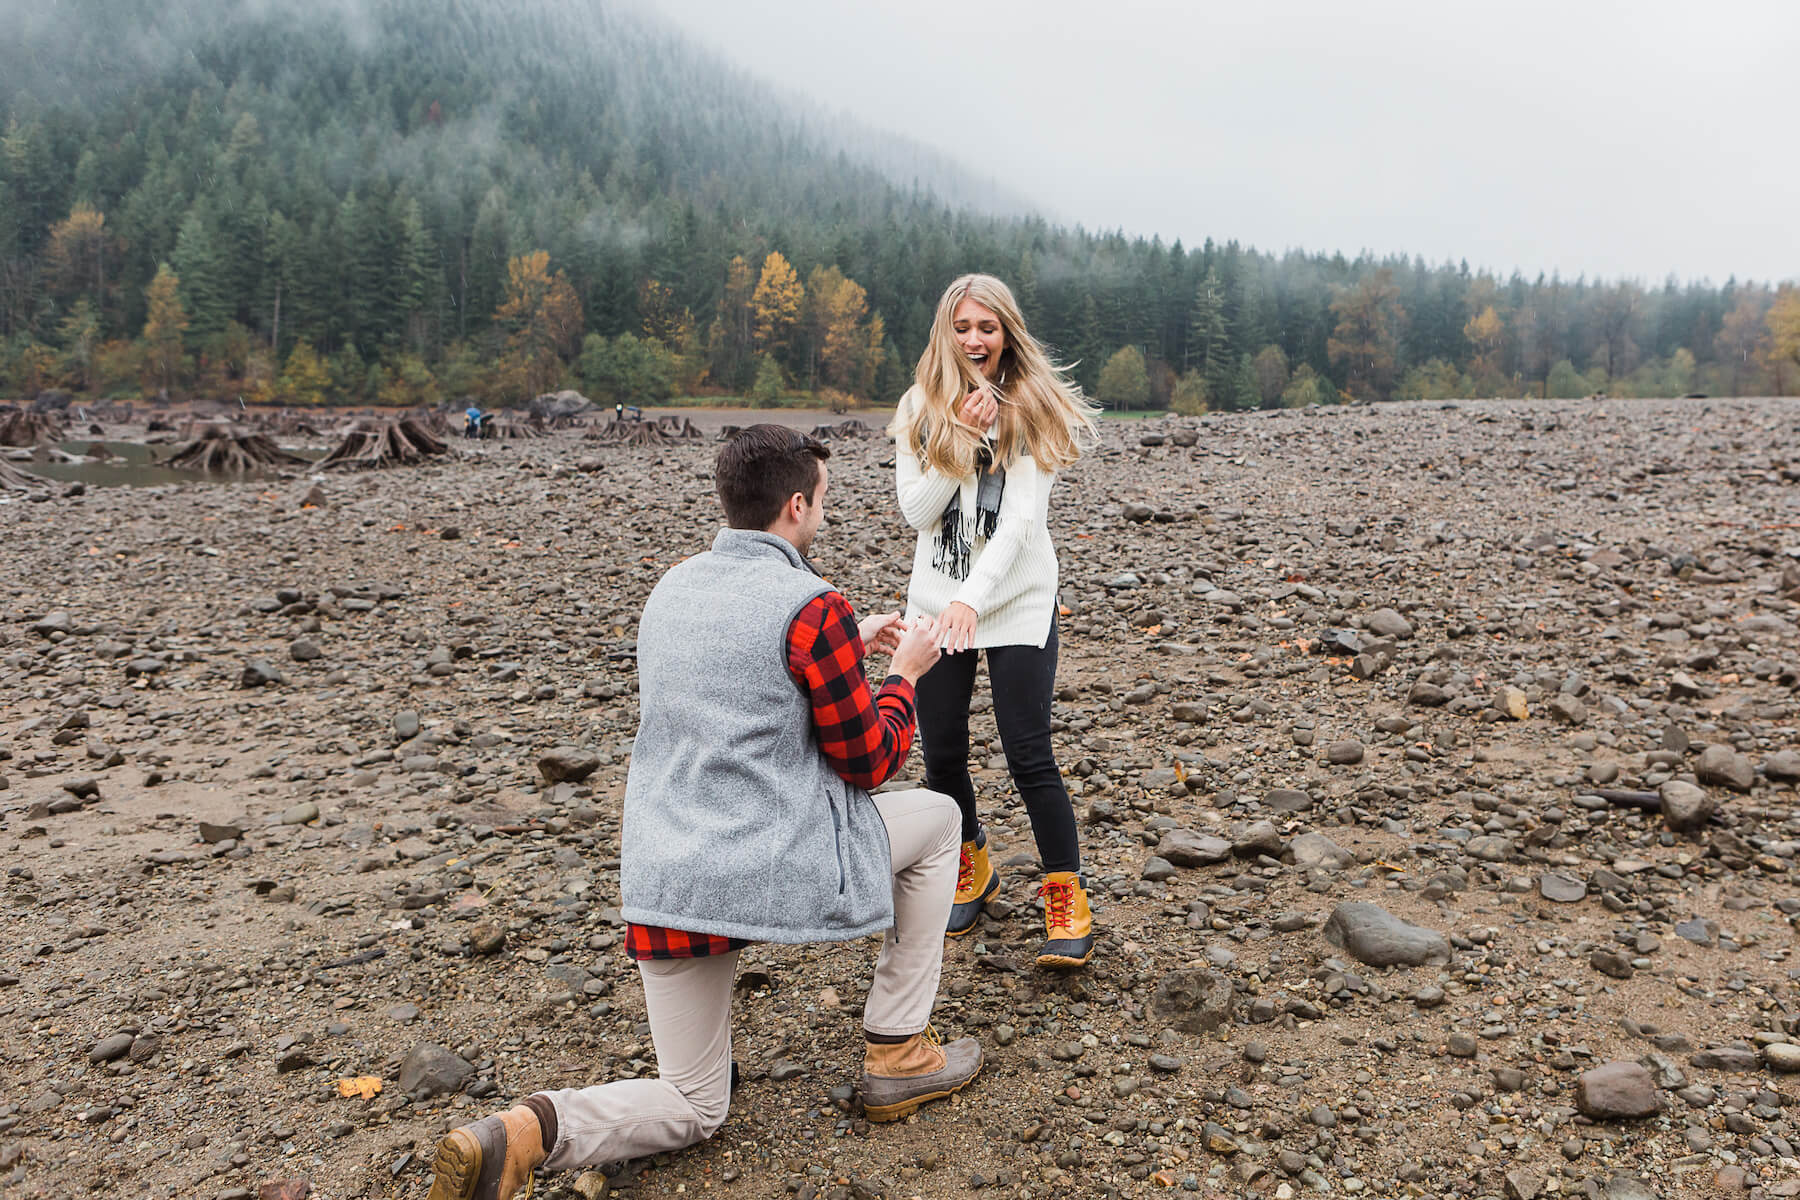 Man is on one knee proposing to a woman on a beach in Seattle. The woman and man are in coordinated outfits and the woman looks surprised.